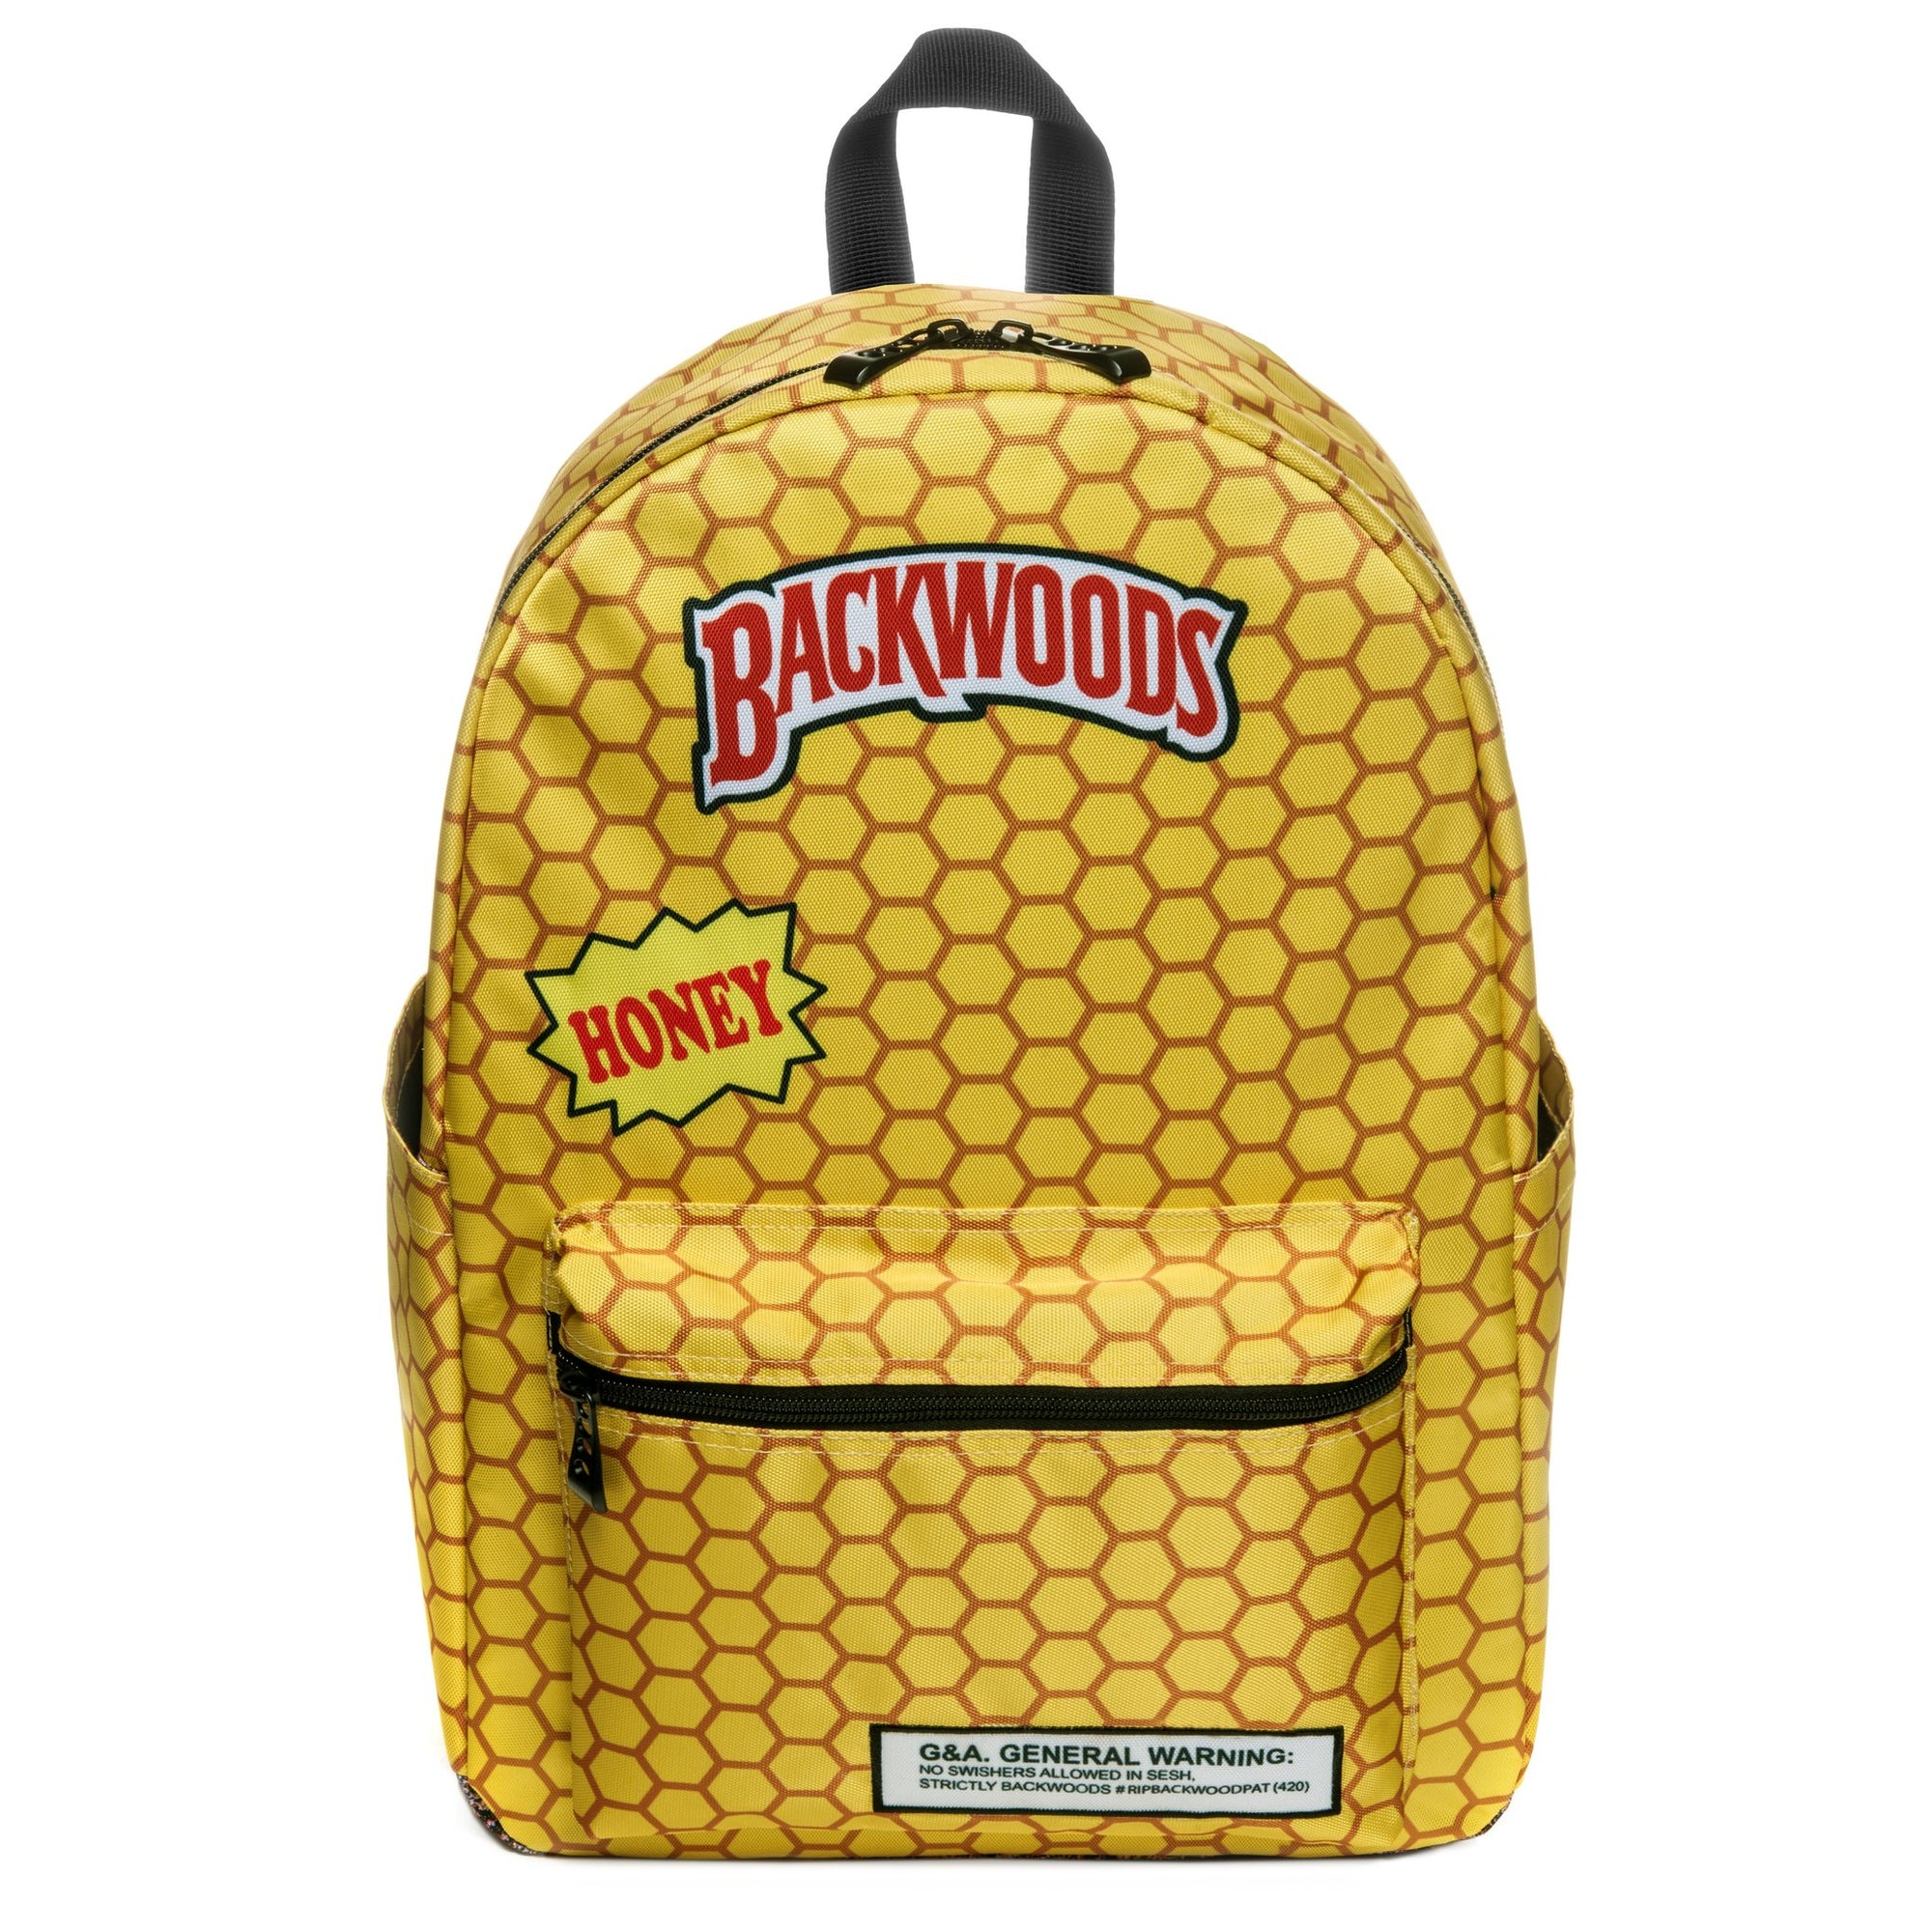 Honey Backwoods Backpack